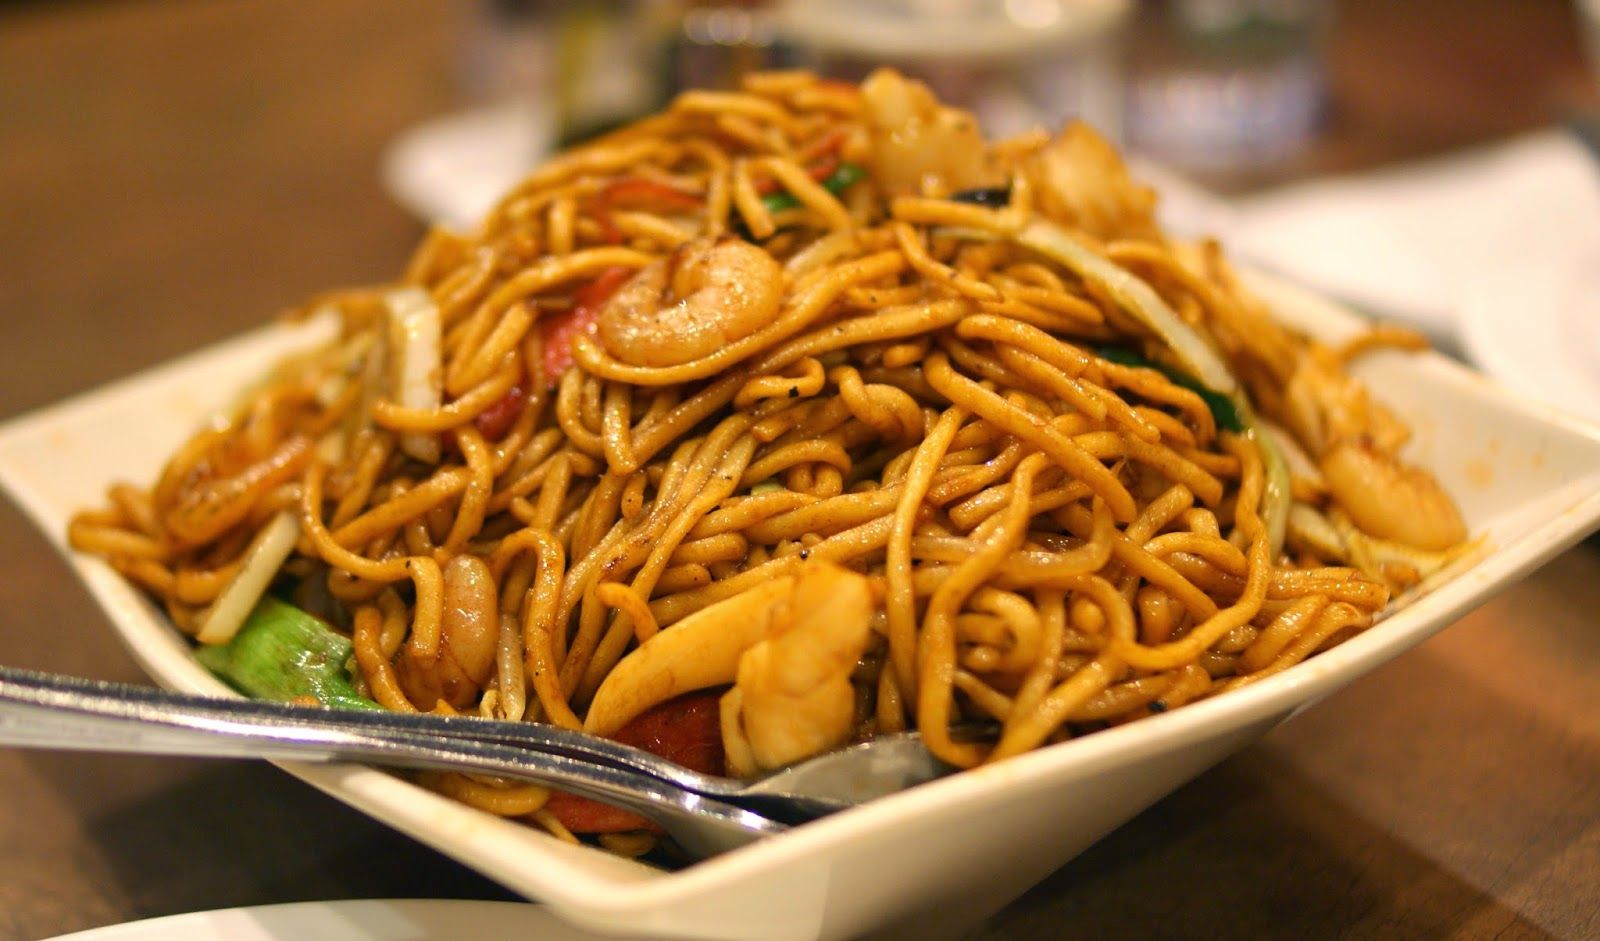 Asian clipart takeout chinese. Food dishes pinterest noodles